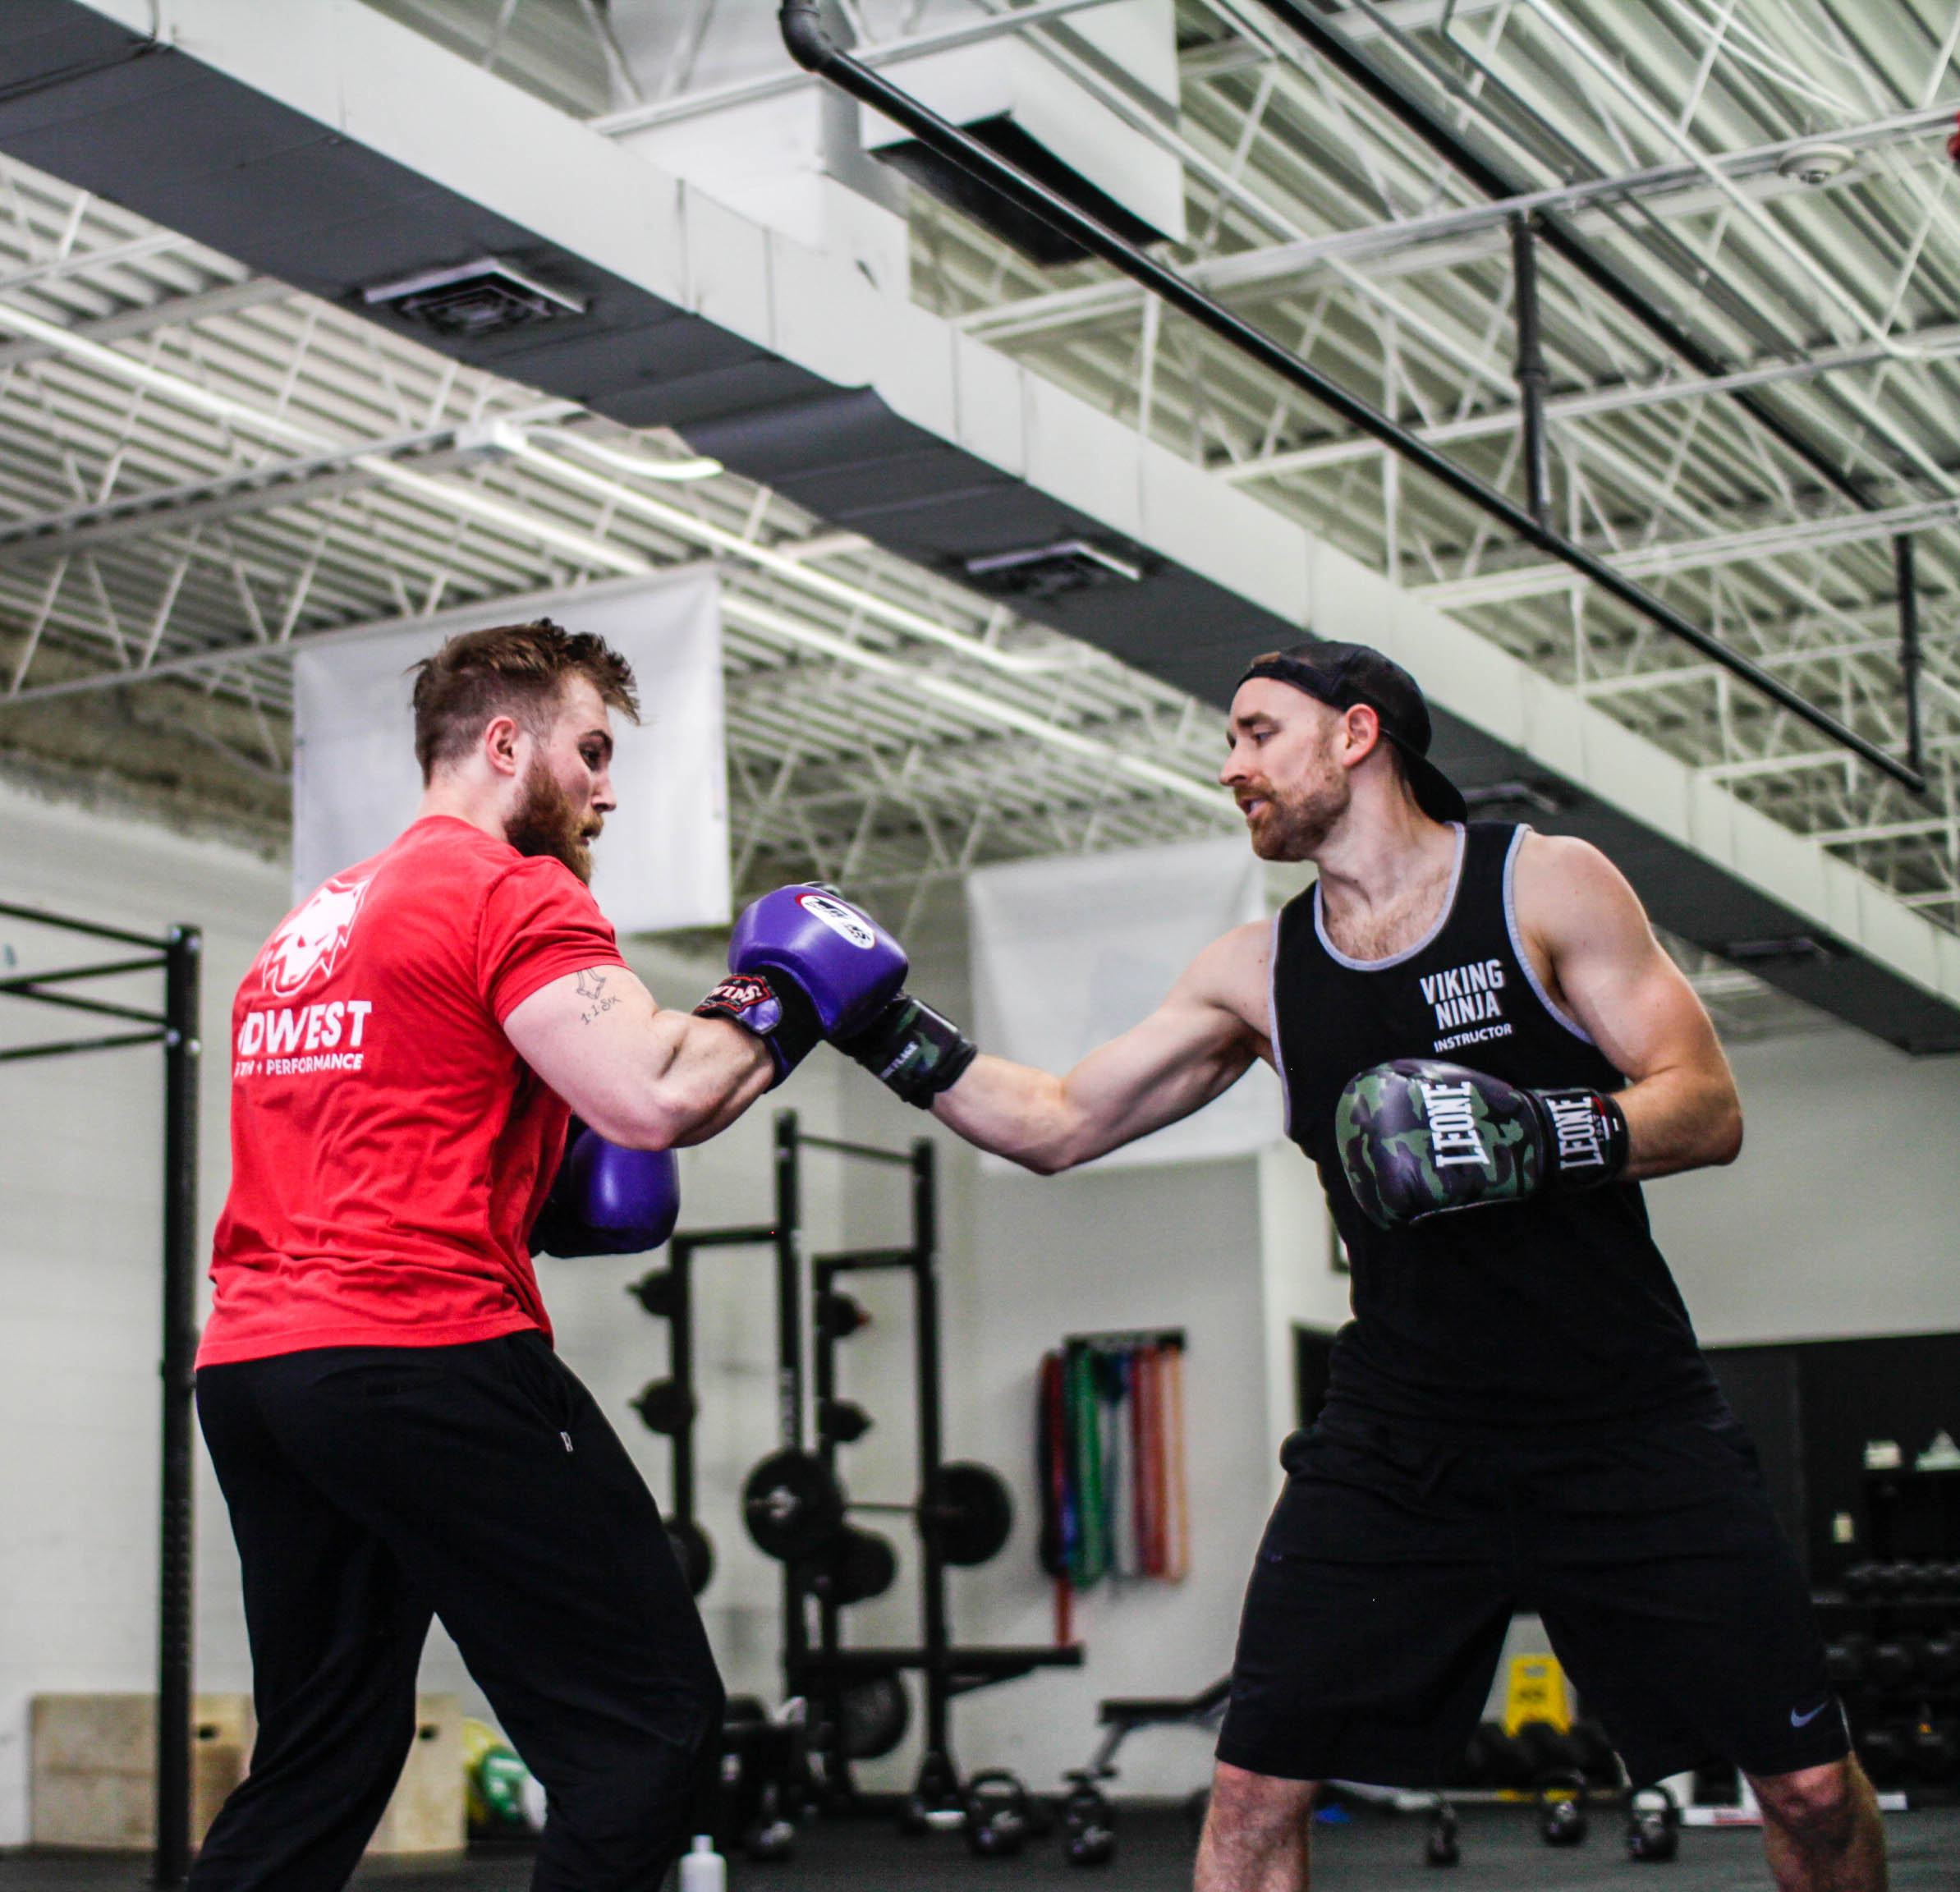 Affordable Online Personal Training and Coaching